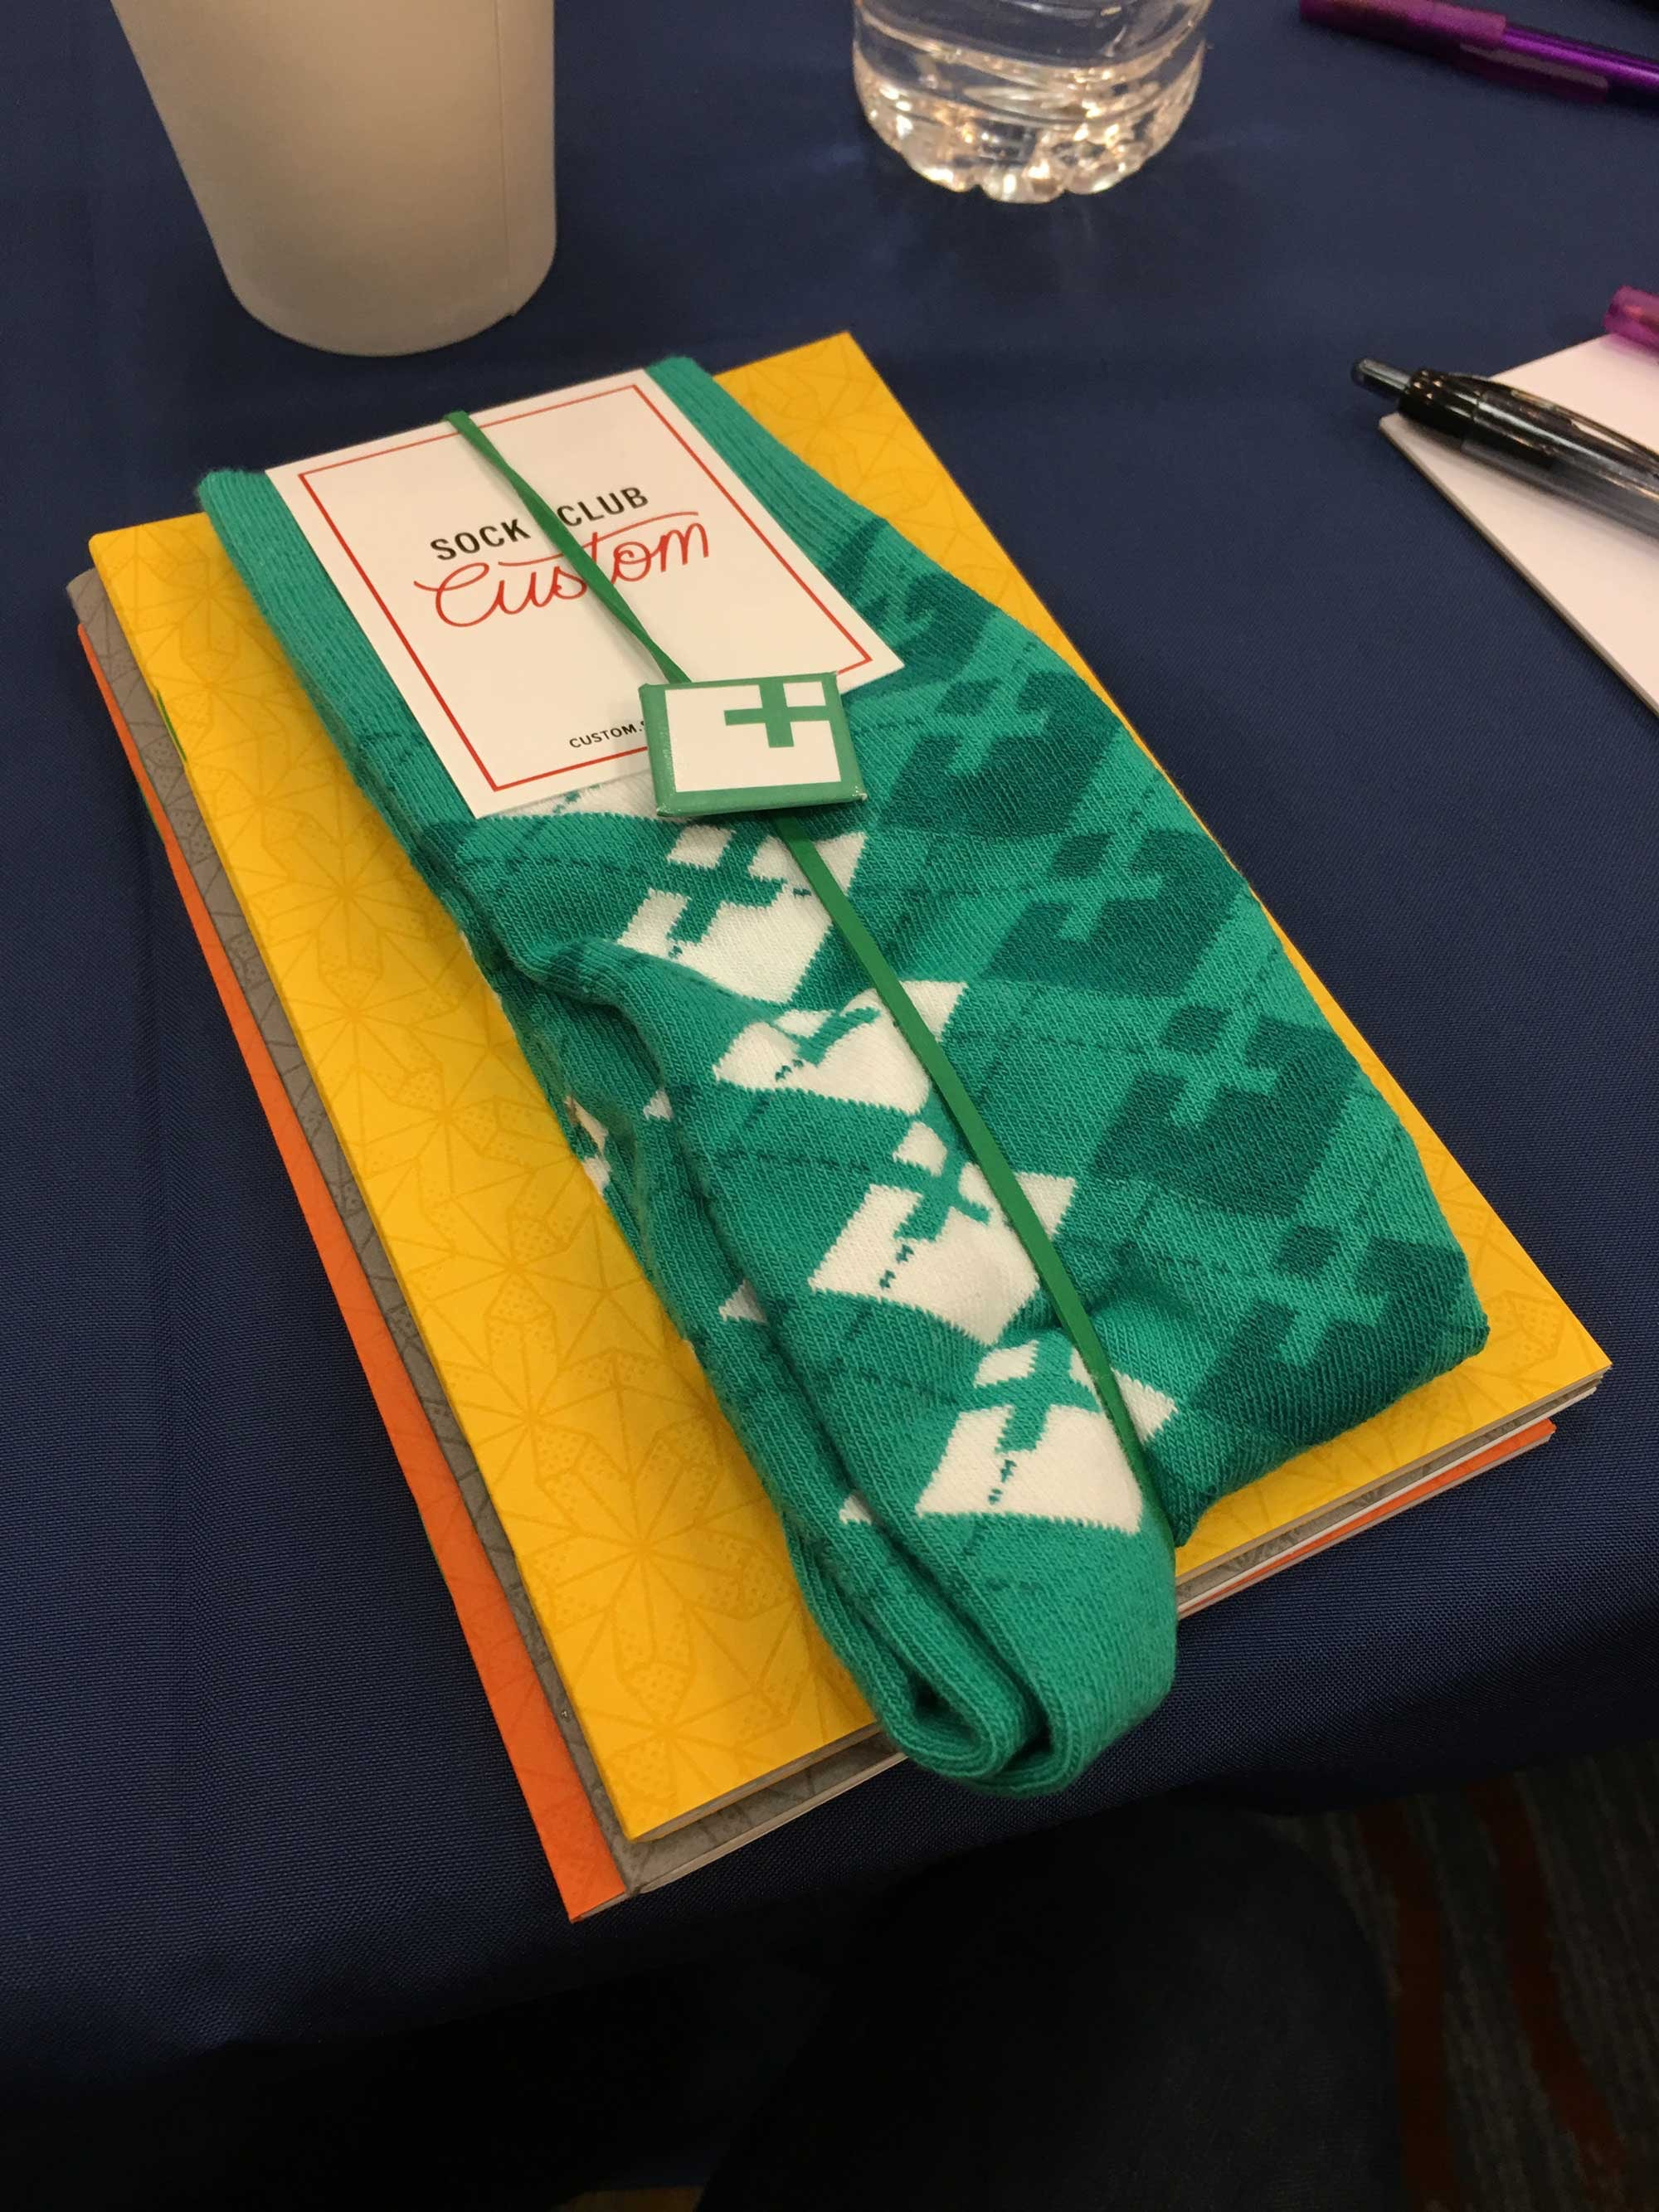 New Company swag, including notebooks and socks